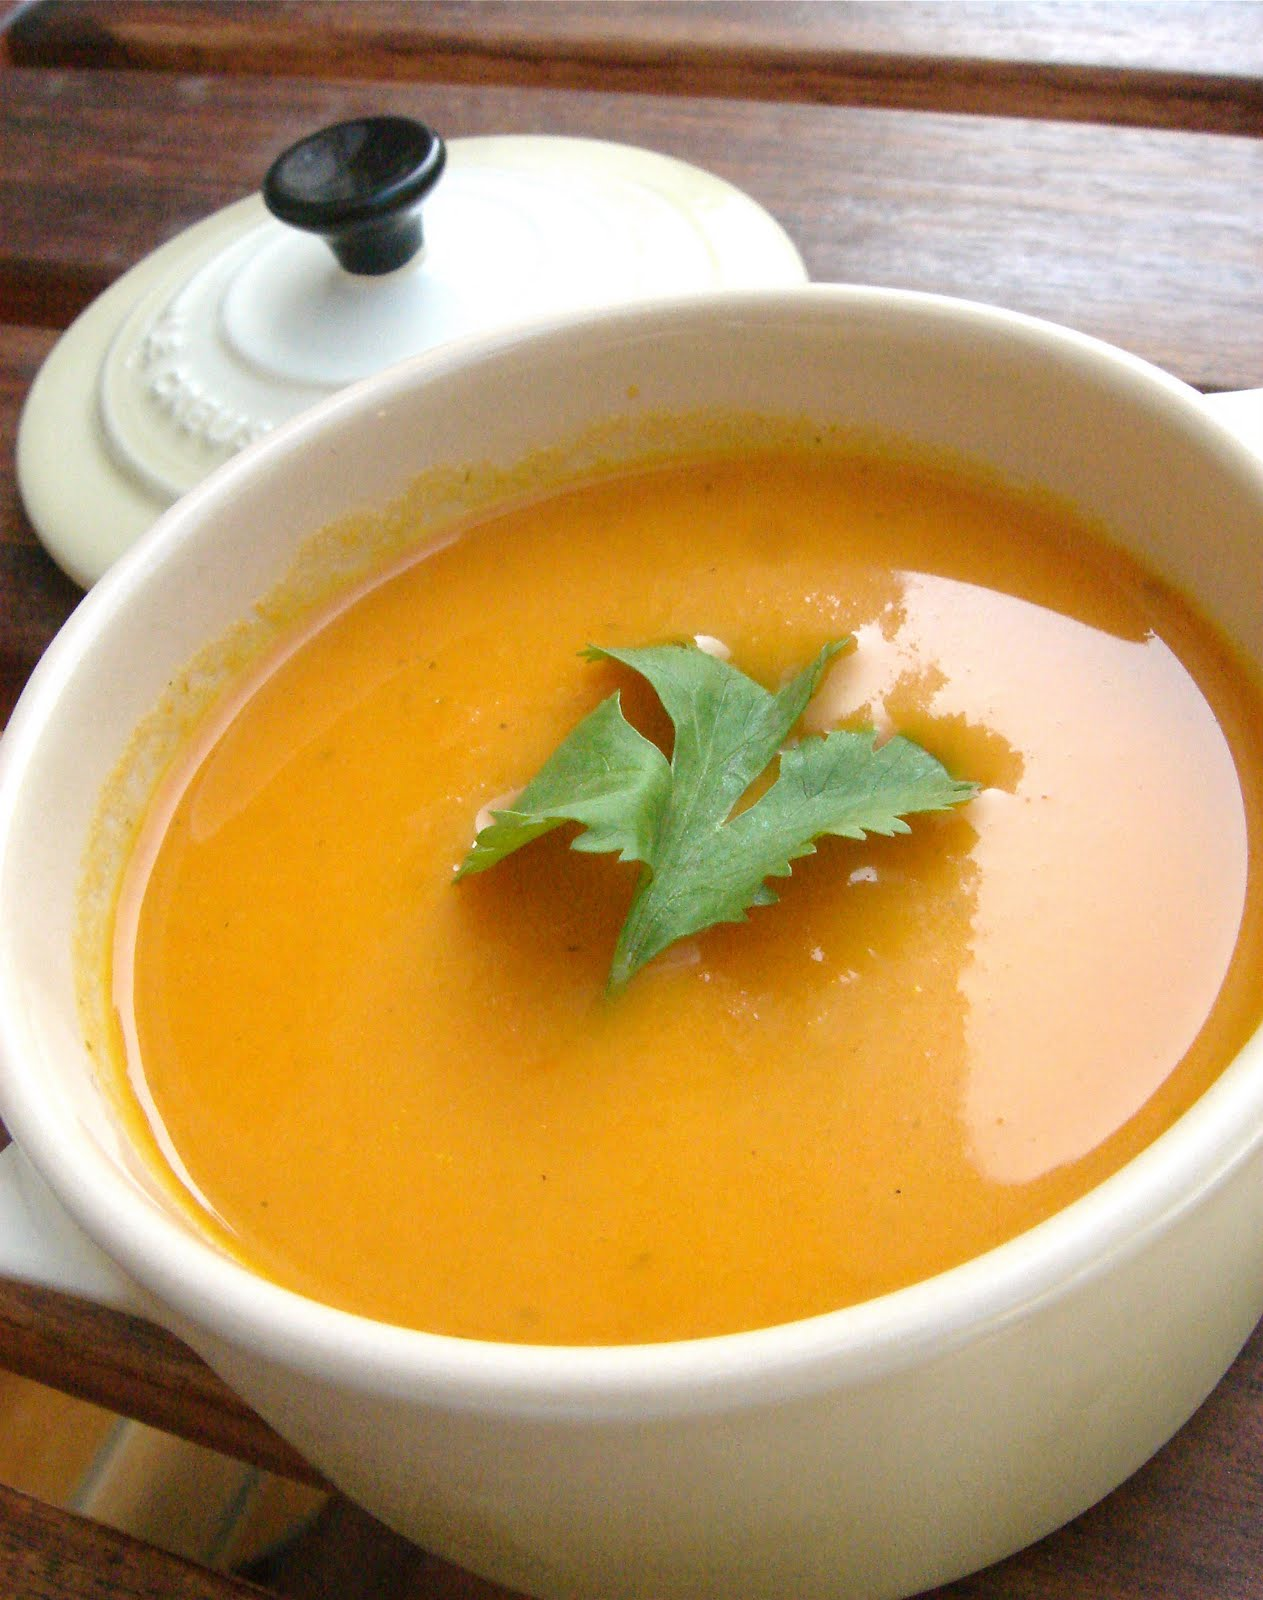 East meets West: Carrot and Coriander Soup